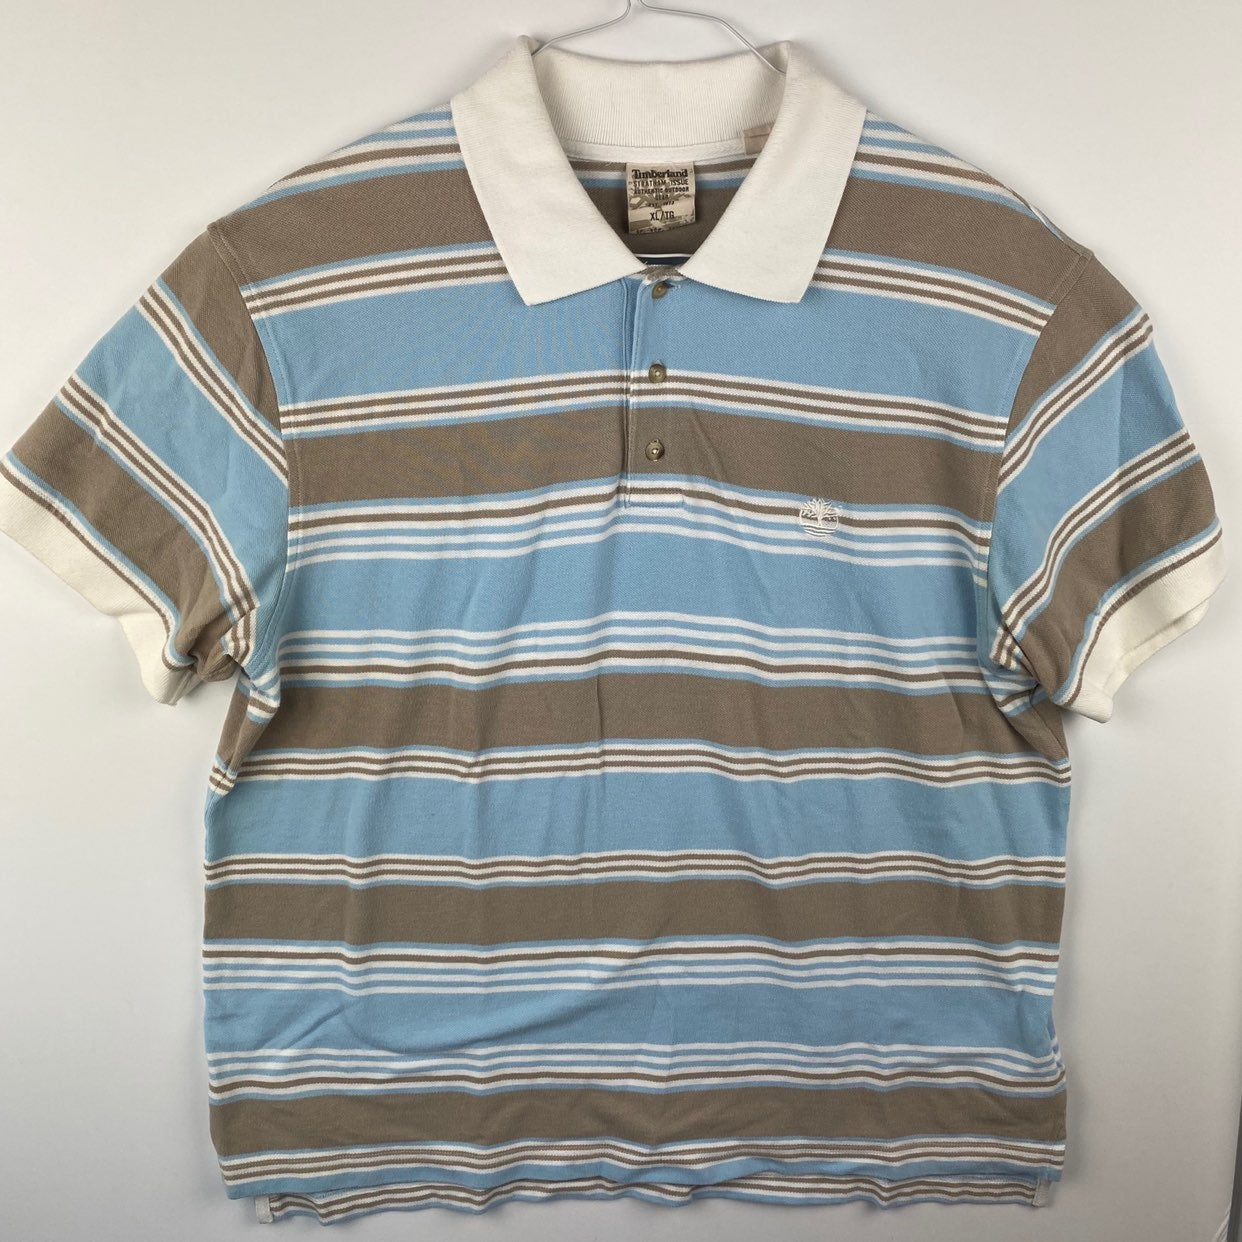 TIMBERLAND Mens XL S/S Striped Polo